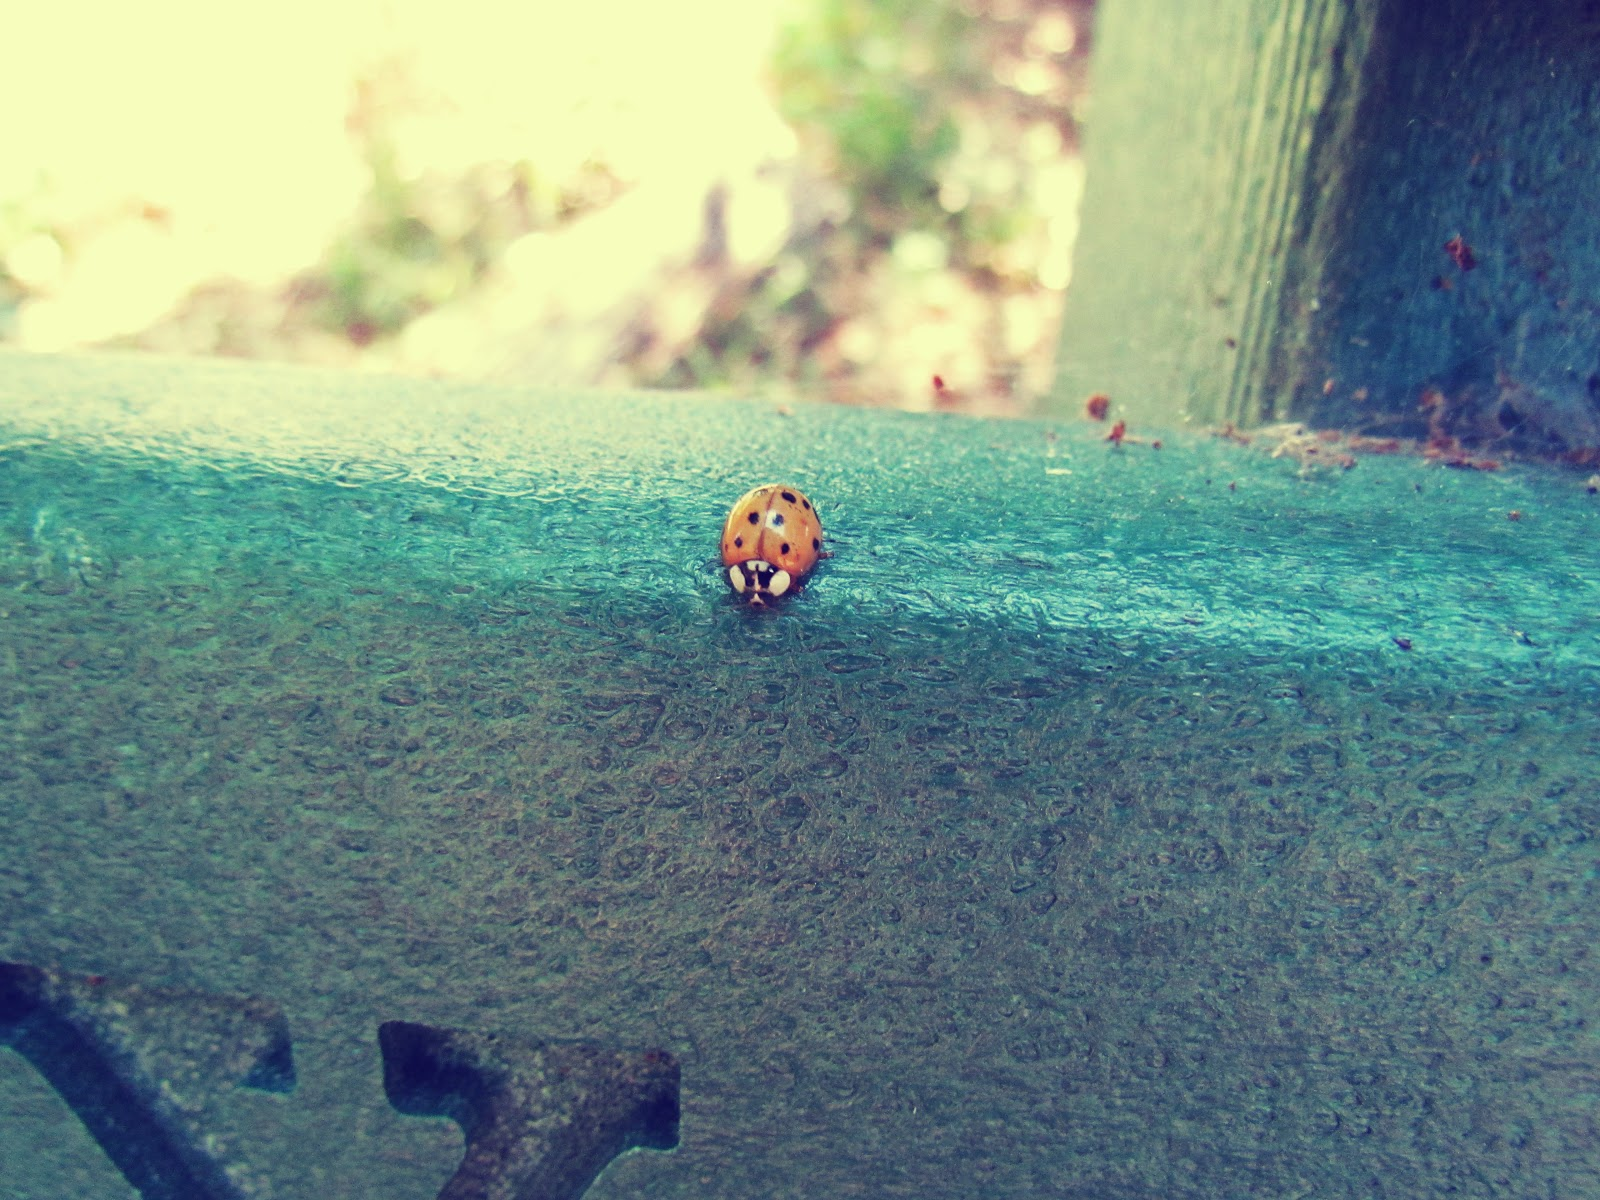 A lad bug crawling on a park bench in mother nature in Hammock Park, Florida